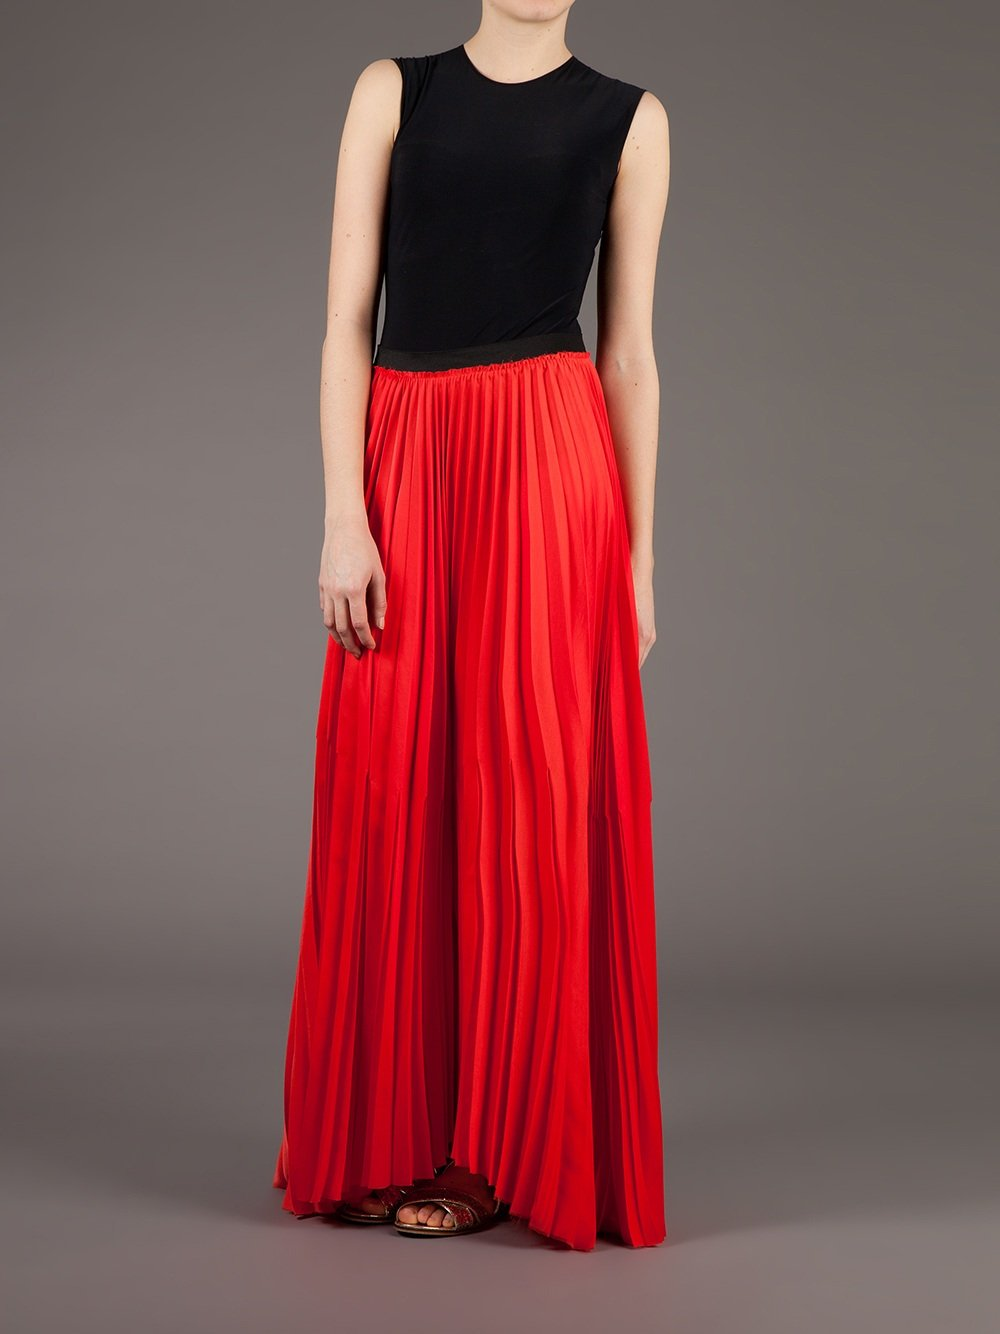 Enza costa Pleated Maxi Skirt in Red | Lyst